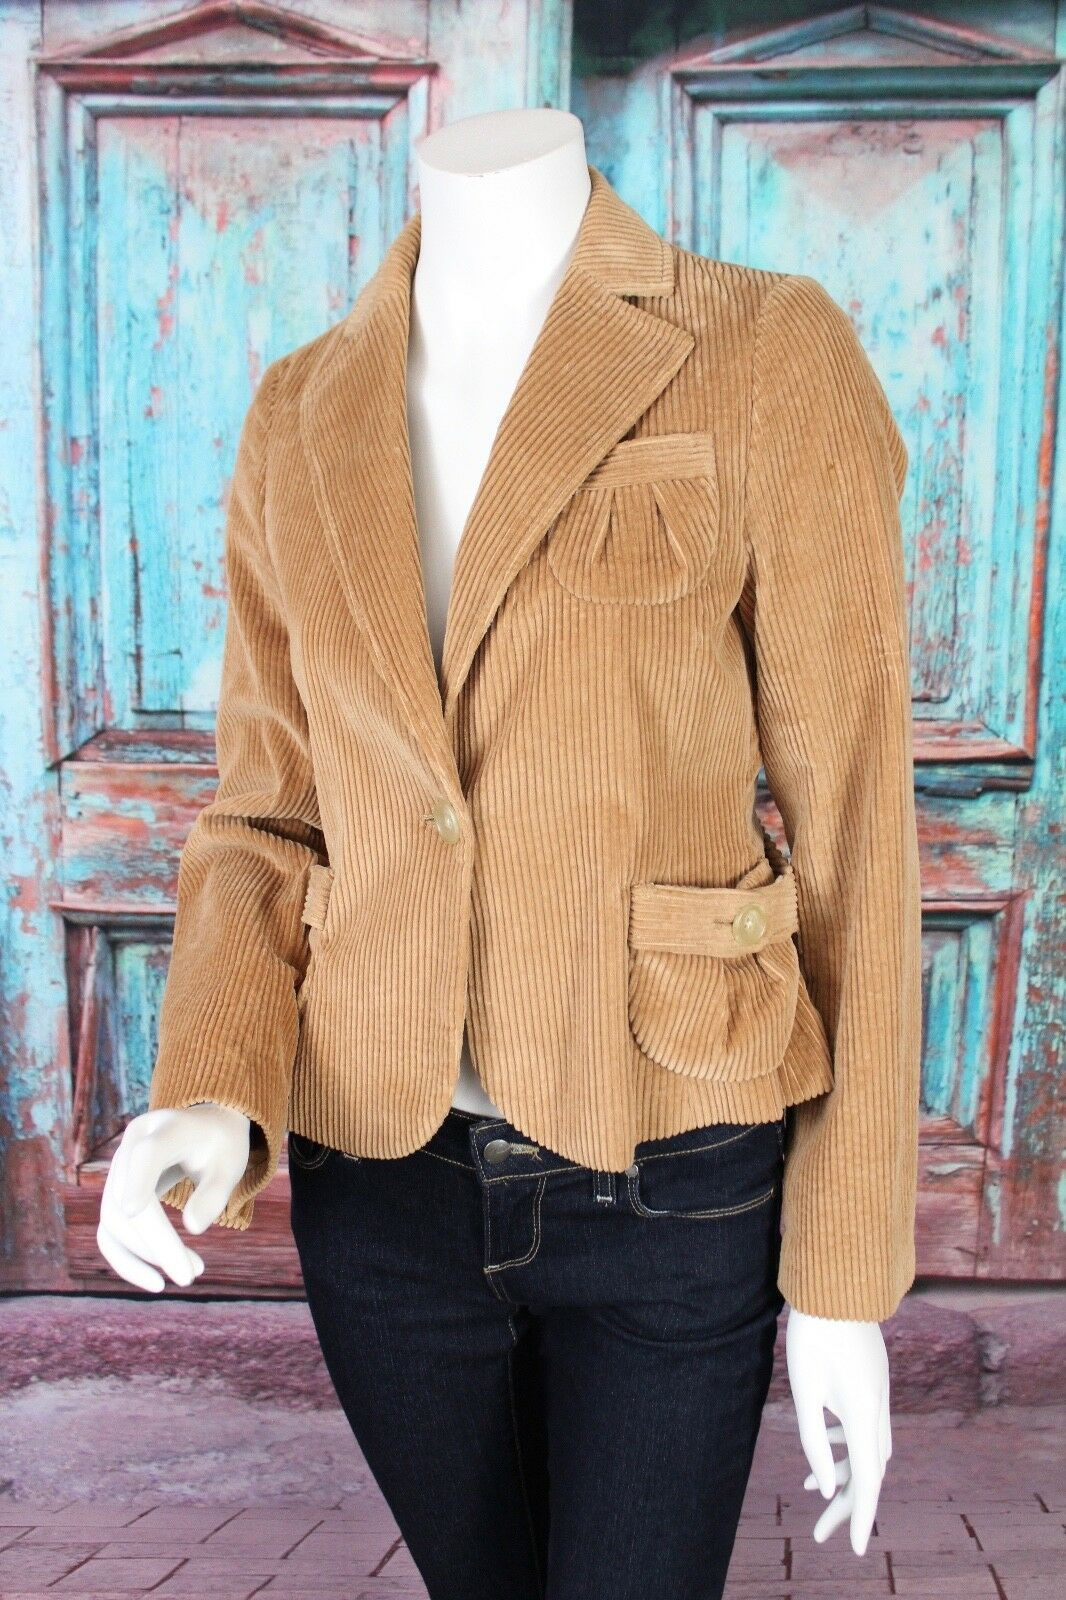 Primary image for Banana Republic 4 Tan Beige Velvet Wide Wale Cotton Corduroy Blazer Jacket Work